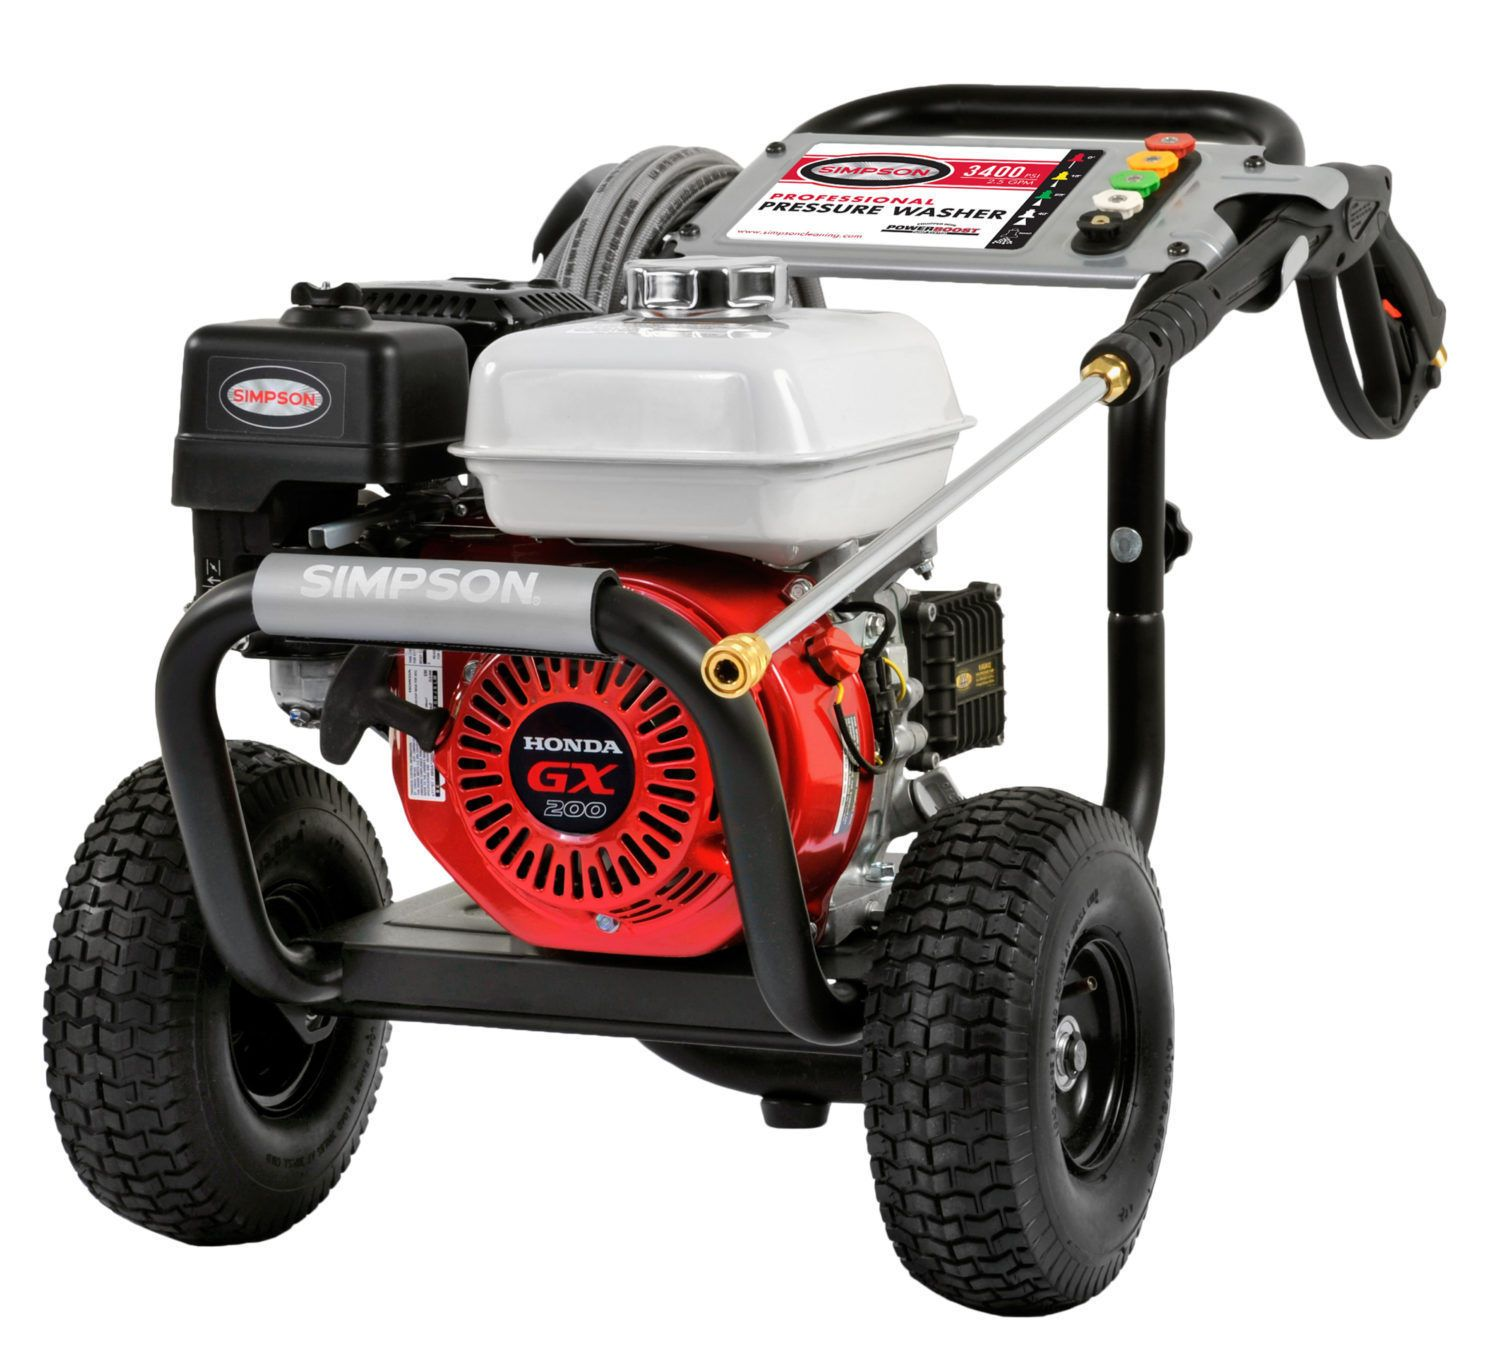 New Simpson 3400 PSI 2 5 GPM Professional Gas Pressure Washer